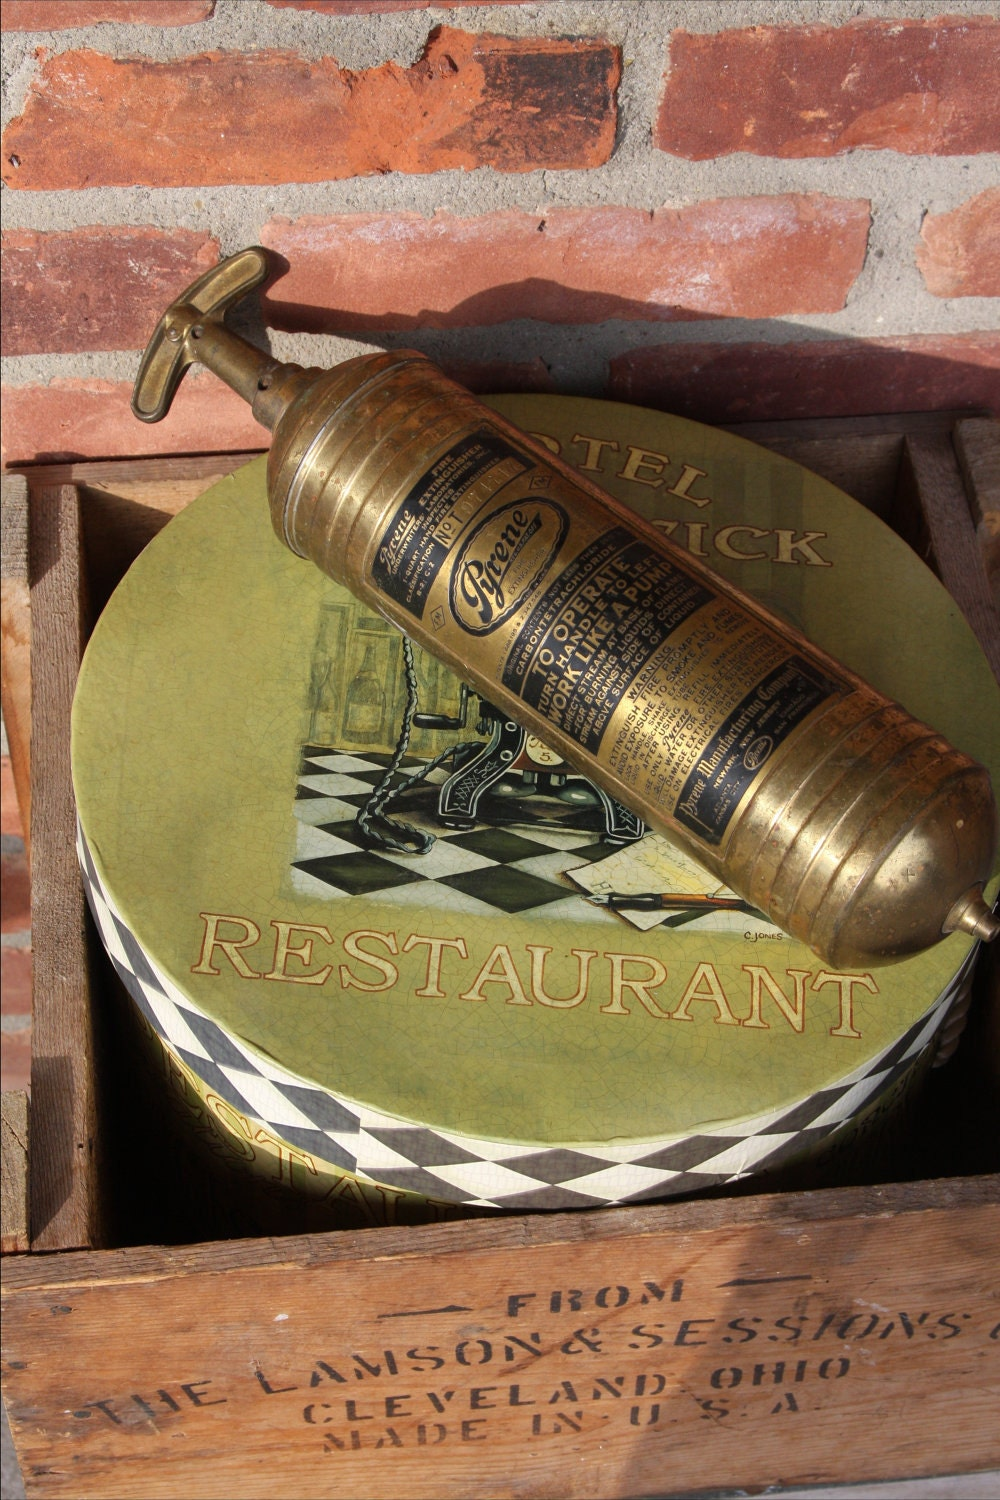 San Francisco Ts >> Antique Pyrene brass fire extinguisher